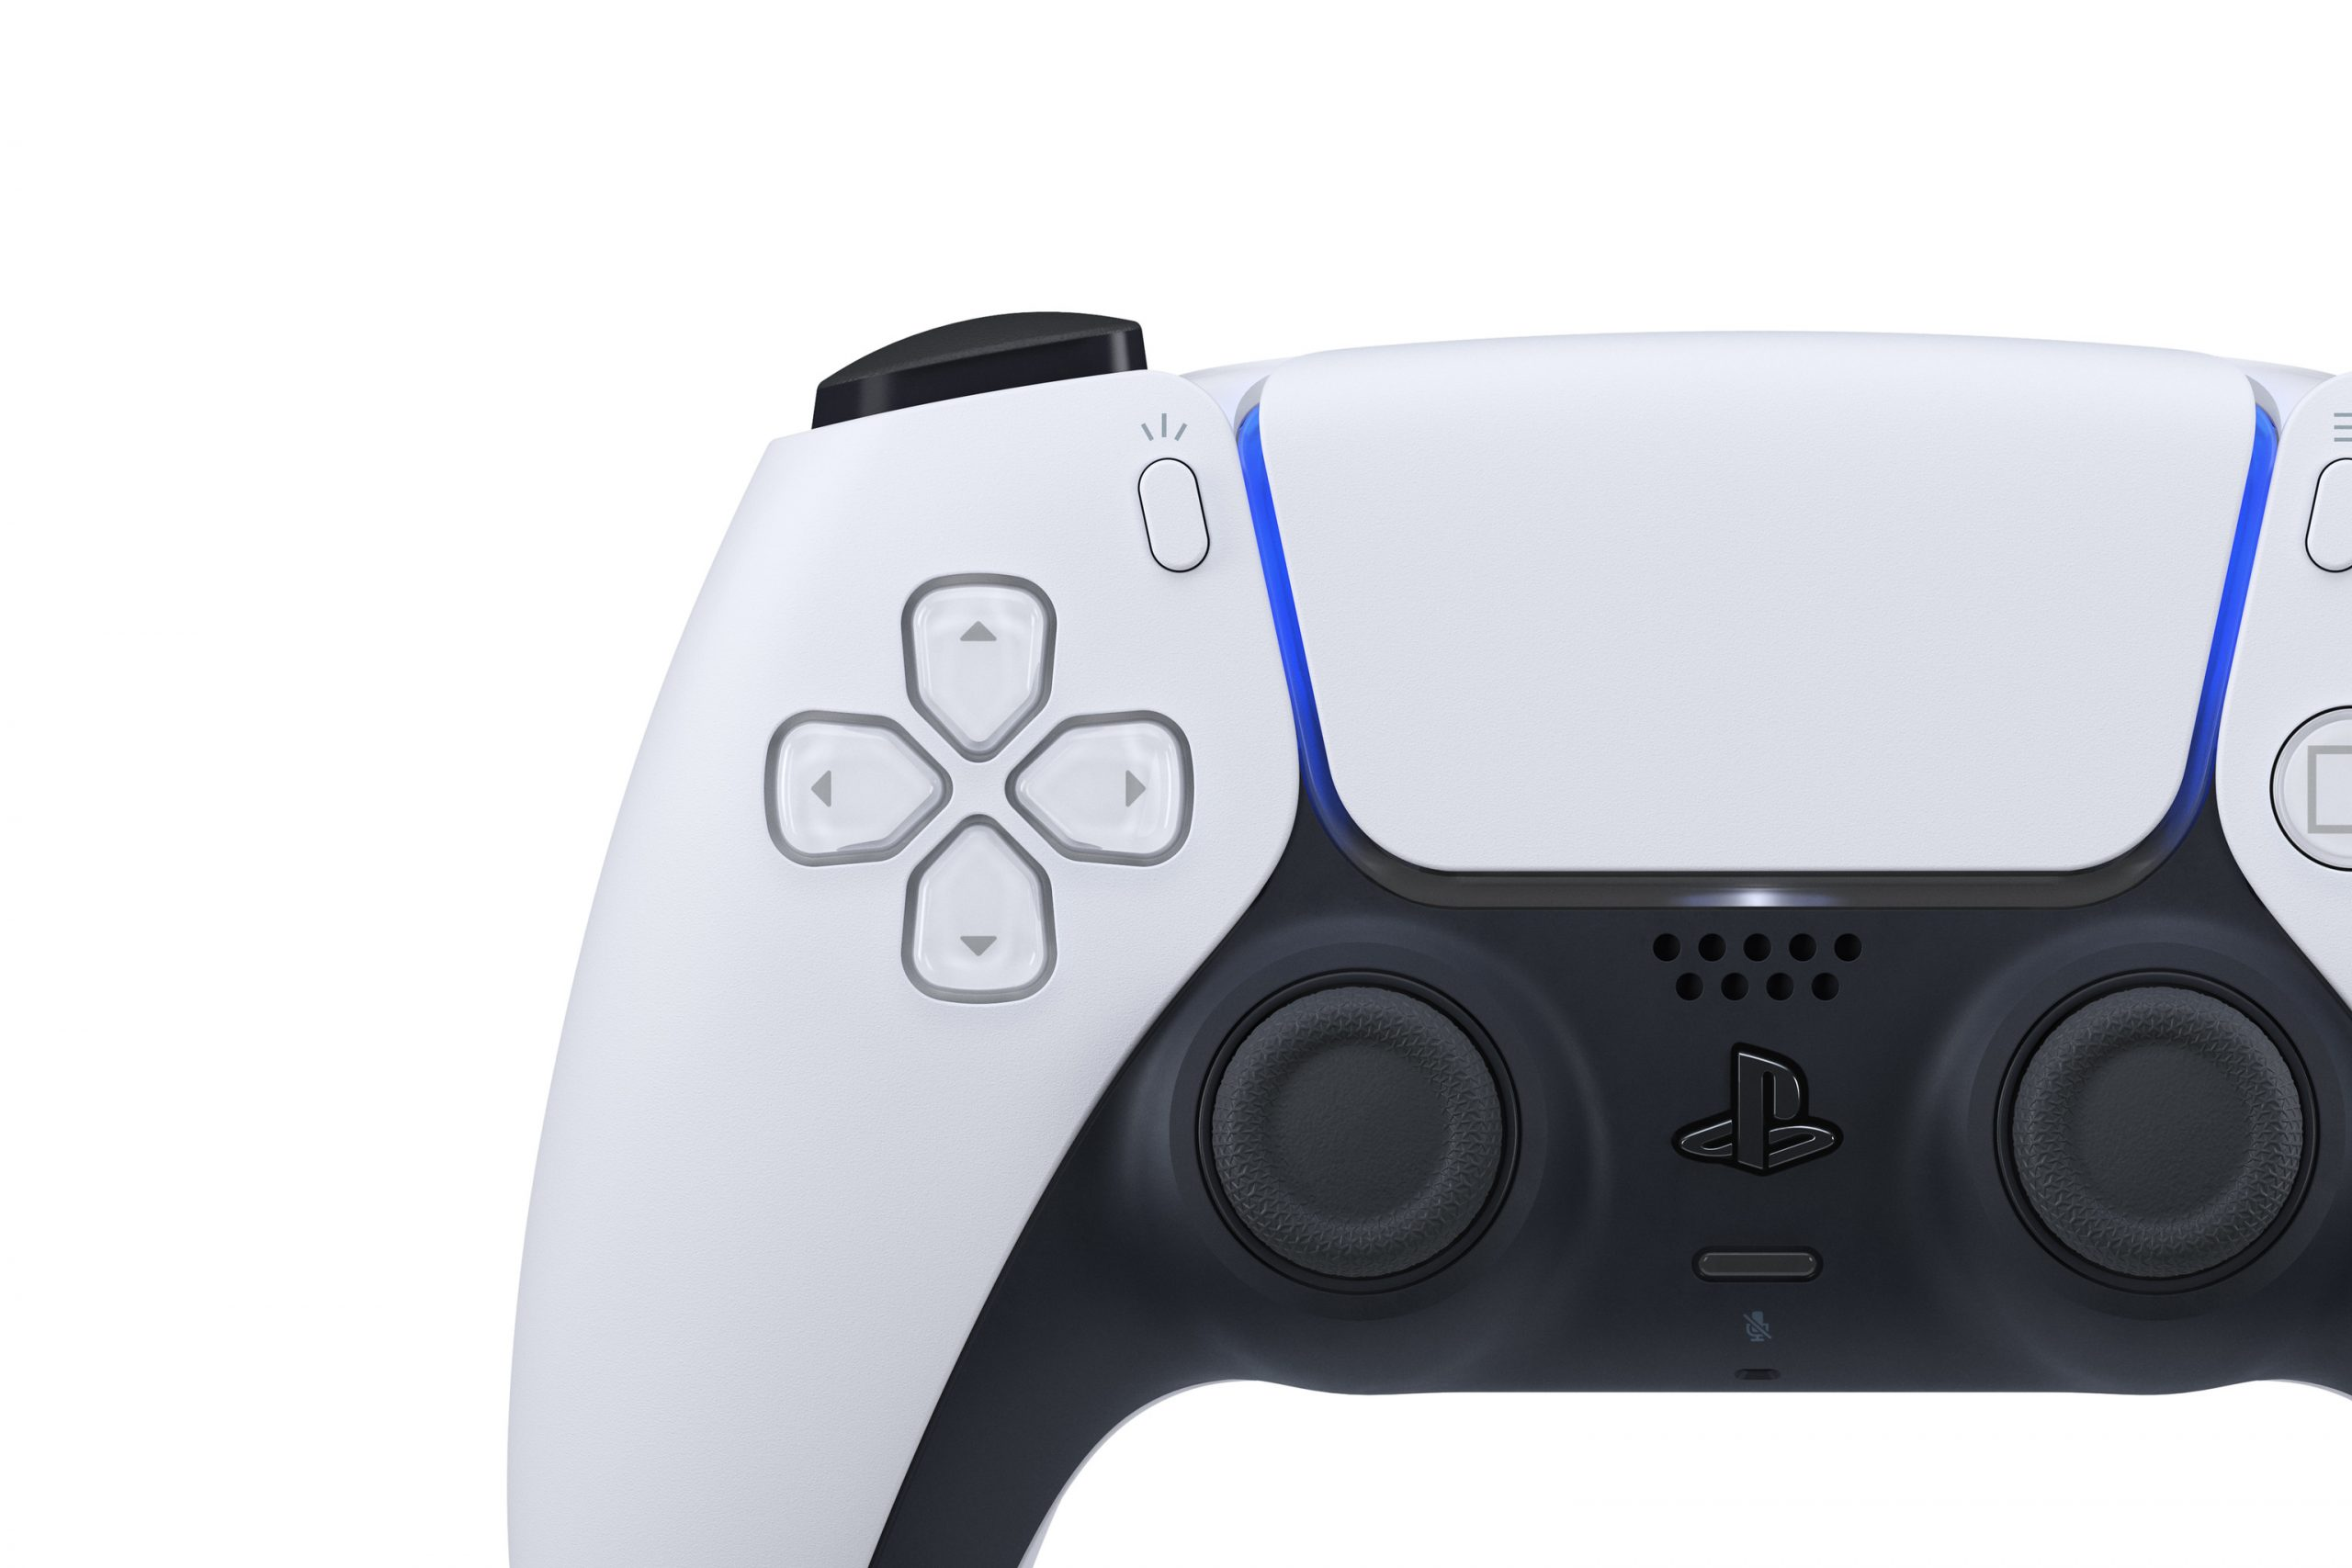 Meet the PlayStation 5 'DuelSense' Controller